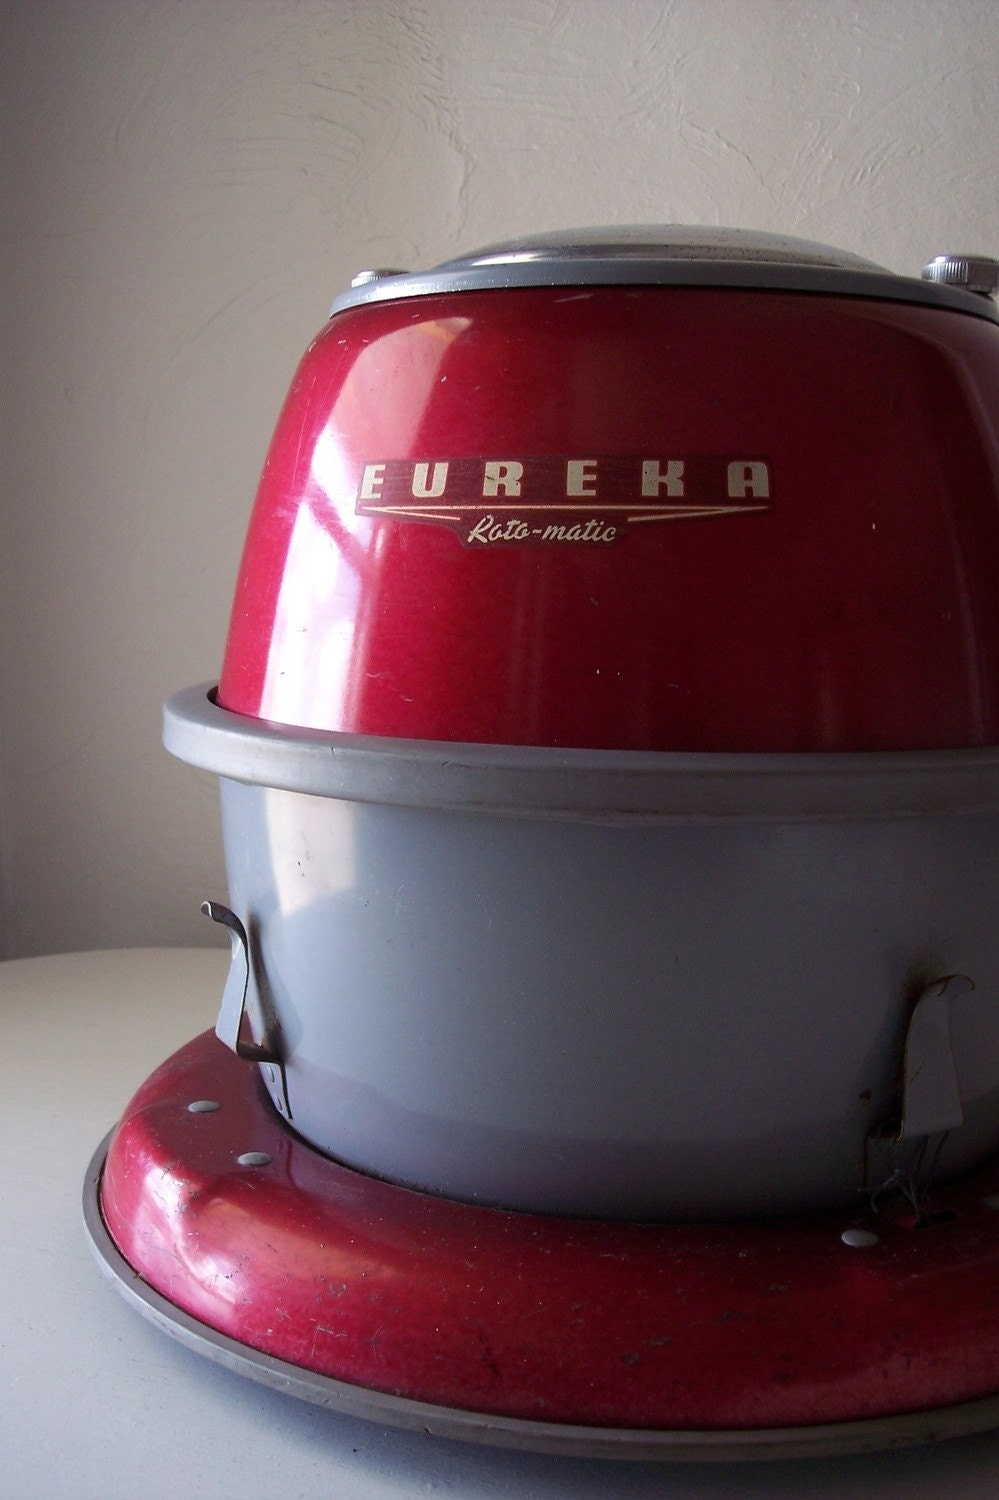 Eureka Canister Vacuum Red And Gray Vintage Vacuum Cleaner